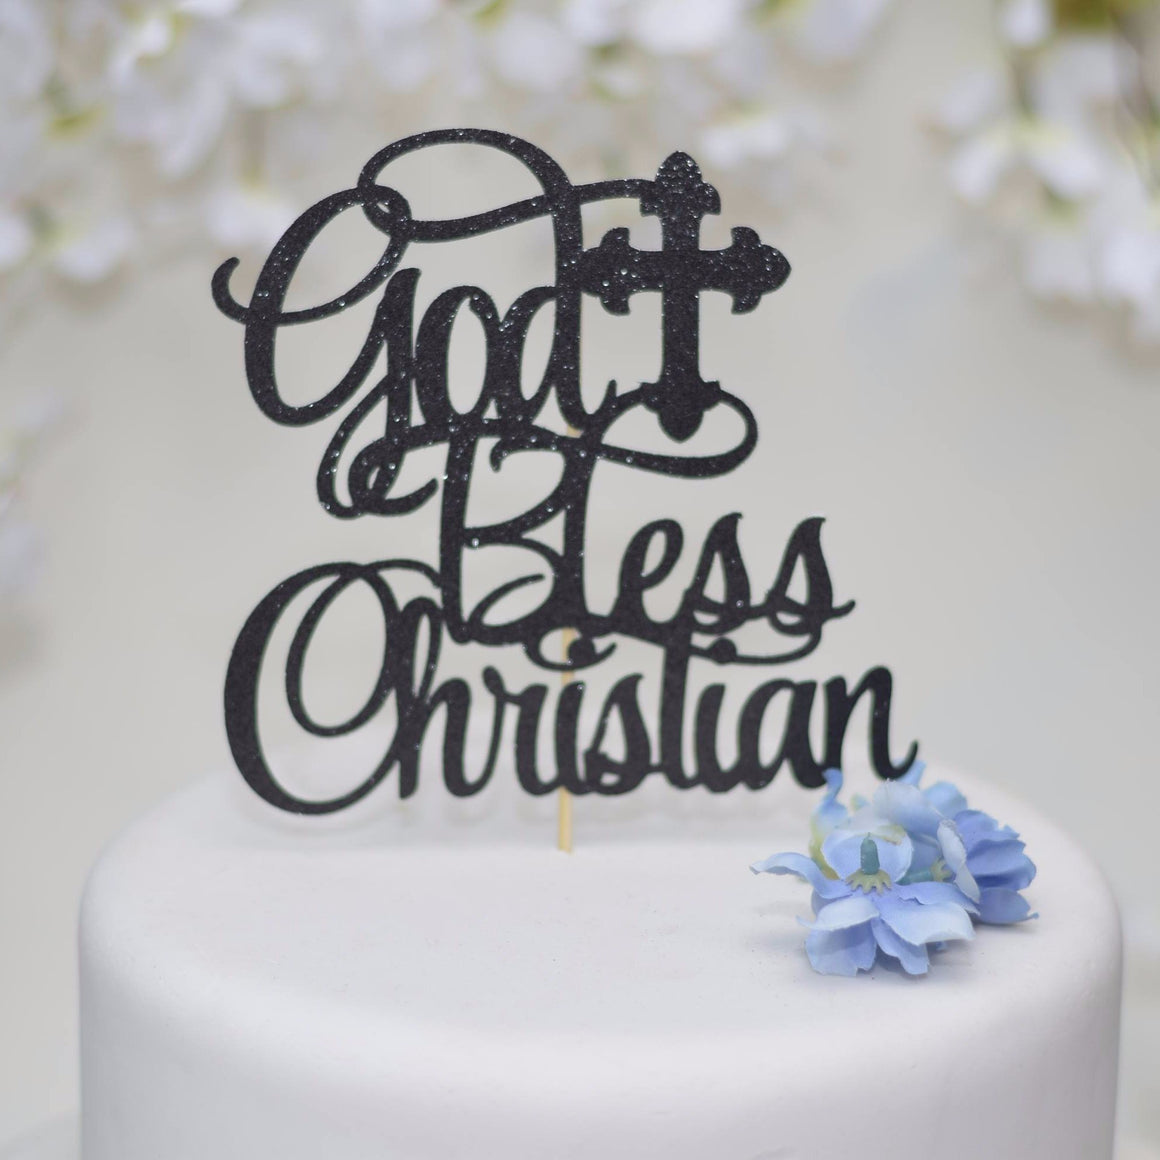 God bless Christian black sparkle glitter cake topper on white cake with blue flower